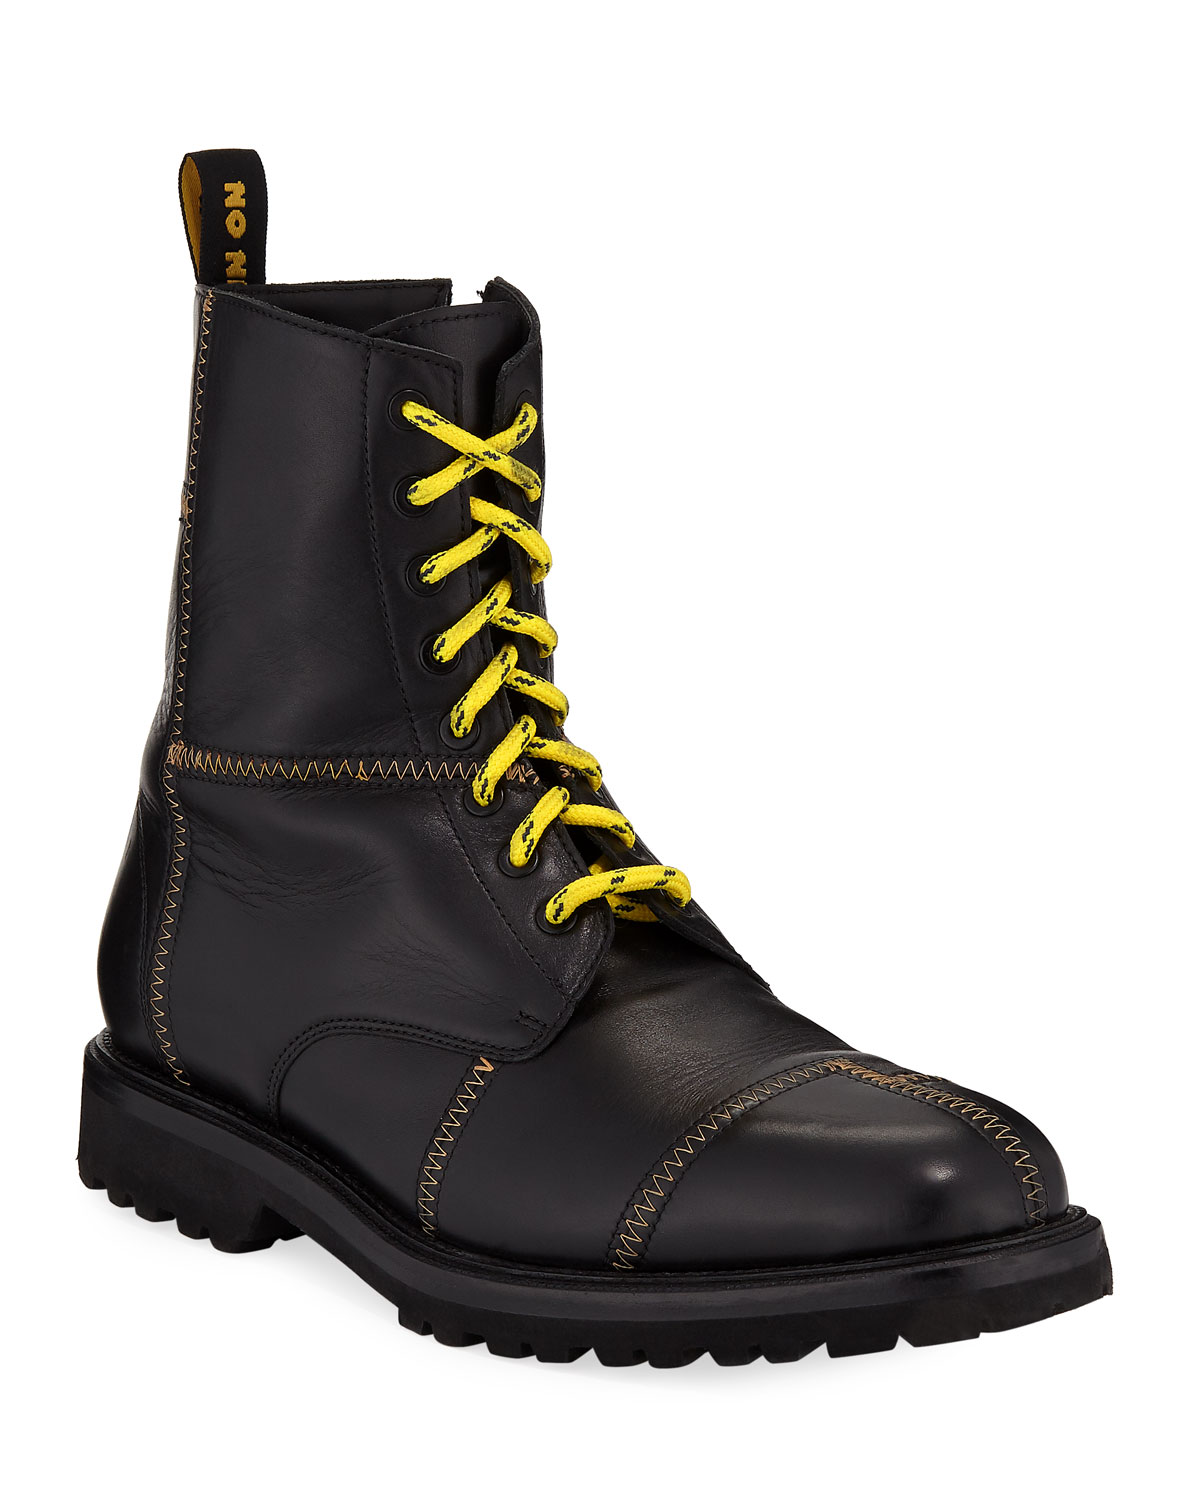 Ovadia Leather & Sons Men's Panic Leather Ovadia Combat Boots 59a381